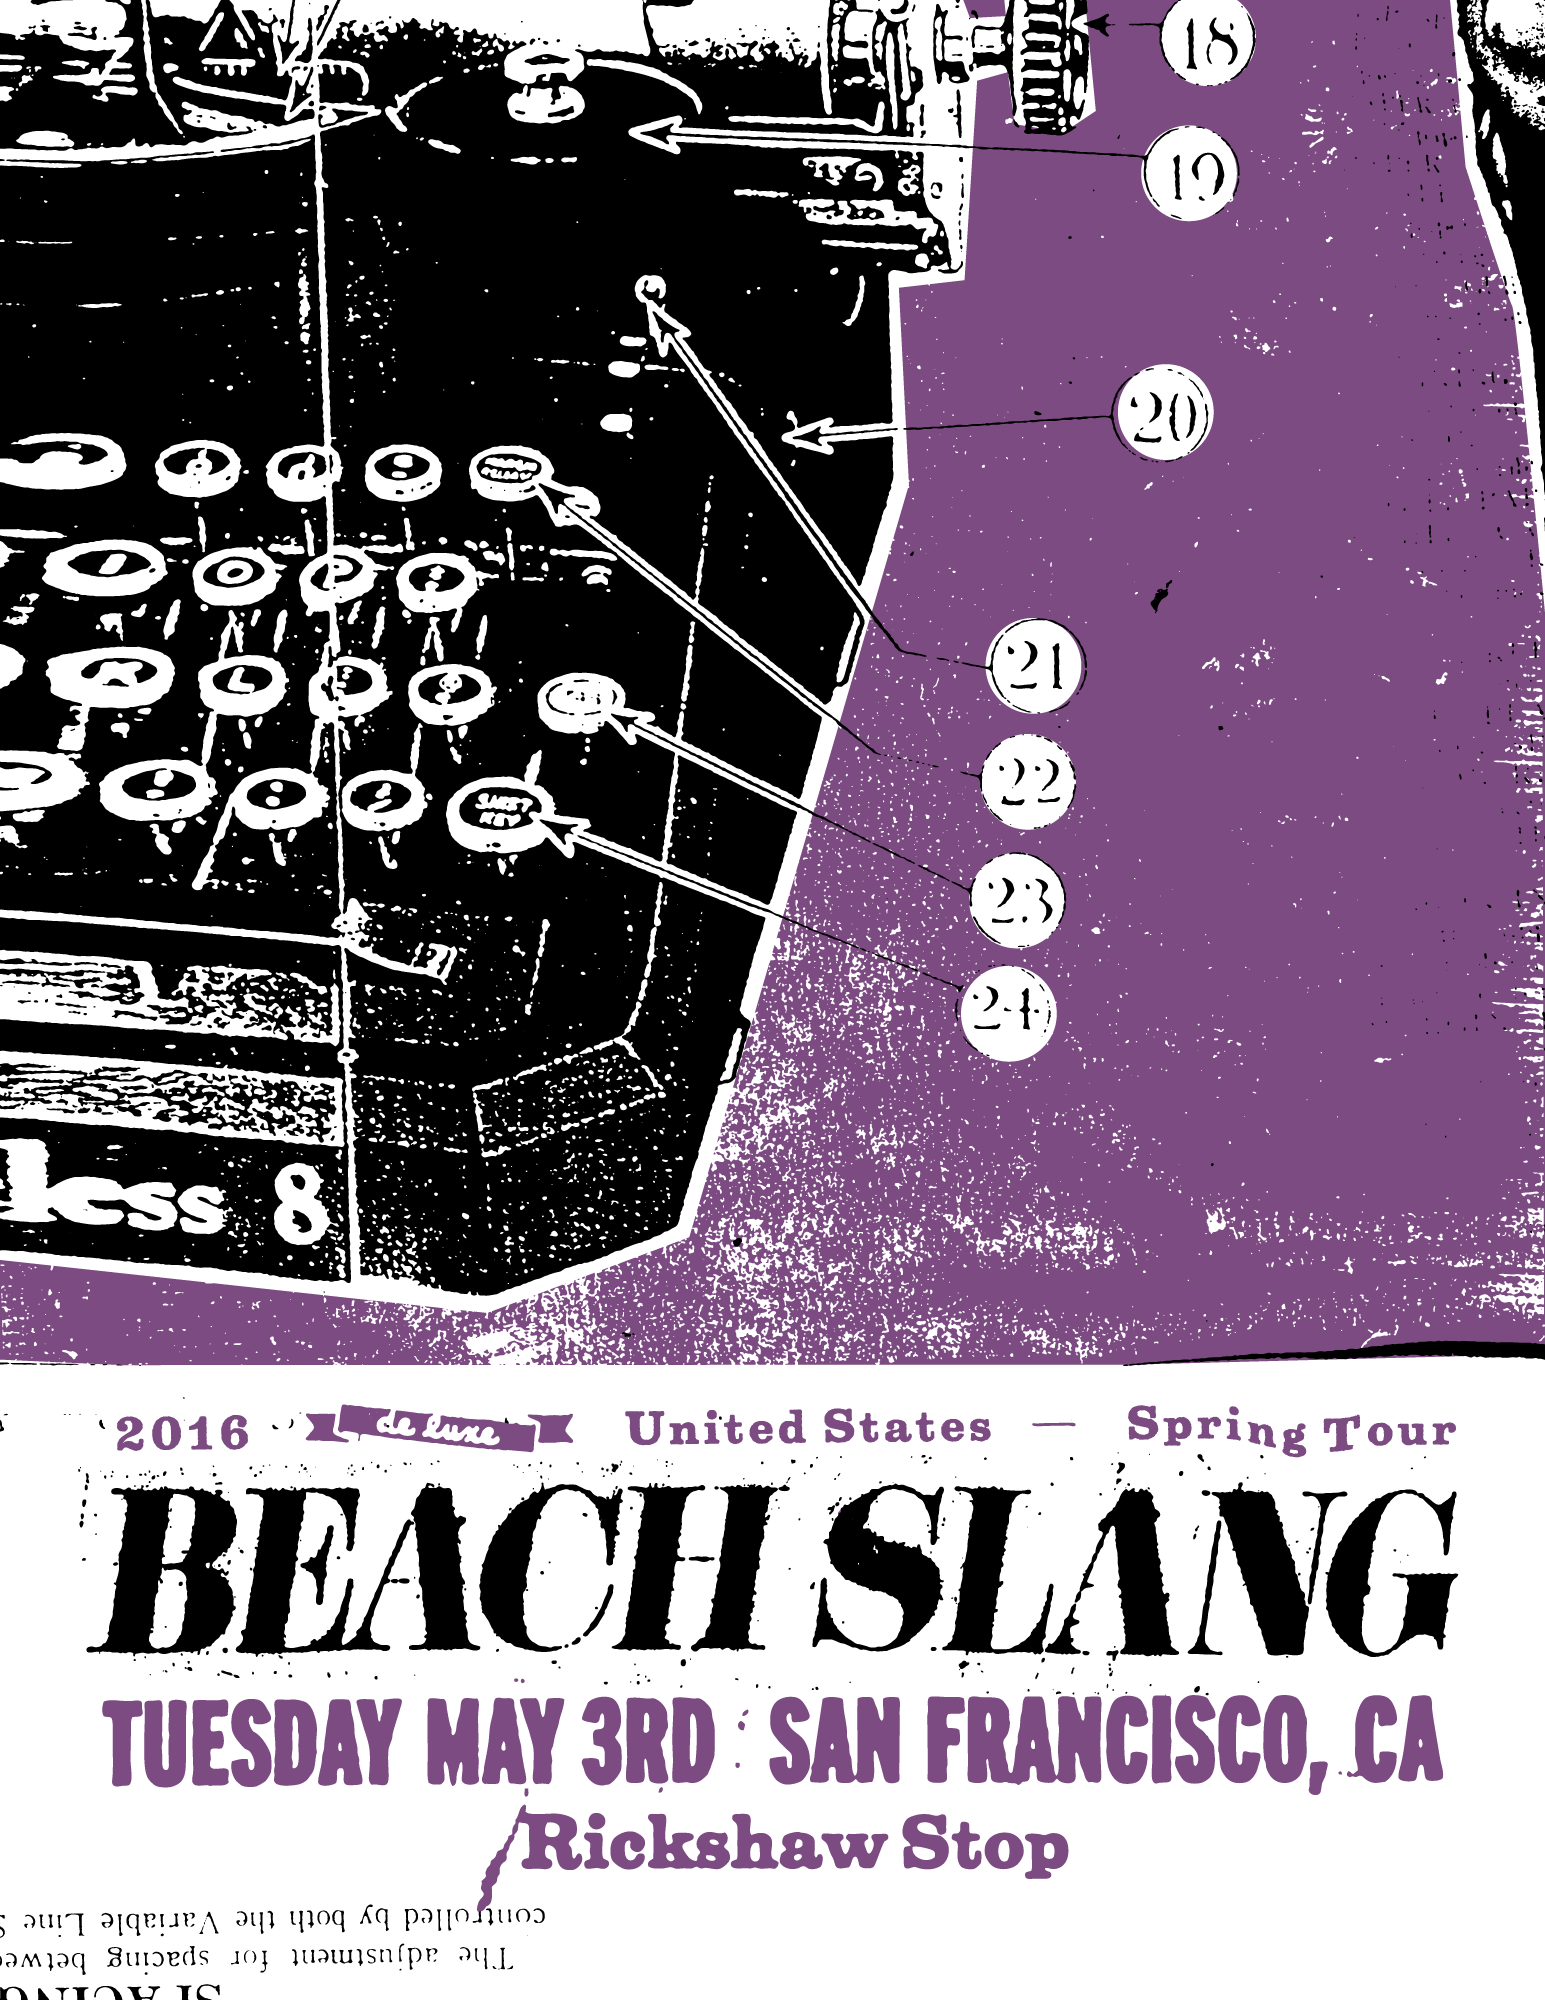 BeachSlang_5-03_SanFrancisco_r1.png